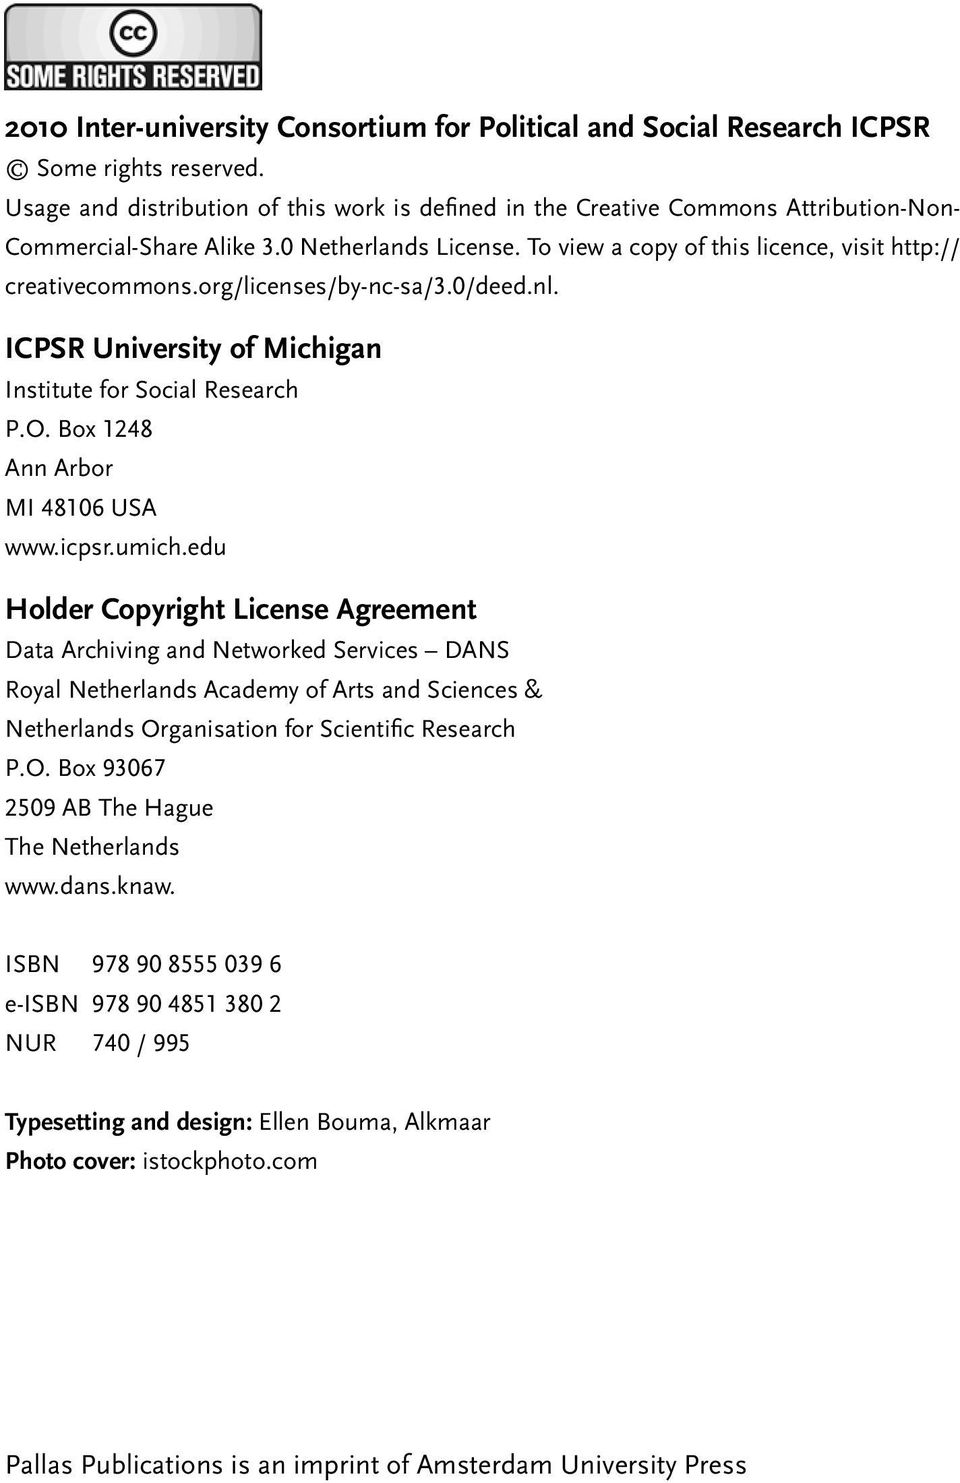 org/licenses/by-nc-sa/3.0/deed.nl. ICPSR University of Michigan Institute for Social Research P.O. Box 1248 Ann Arbor MI 48106 USA www.icpsr.umich.